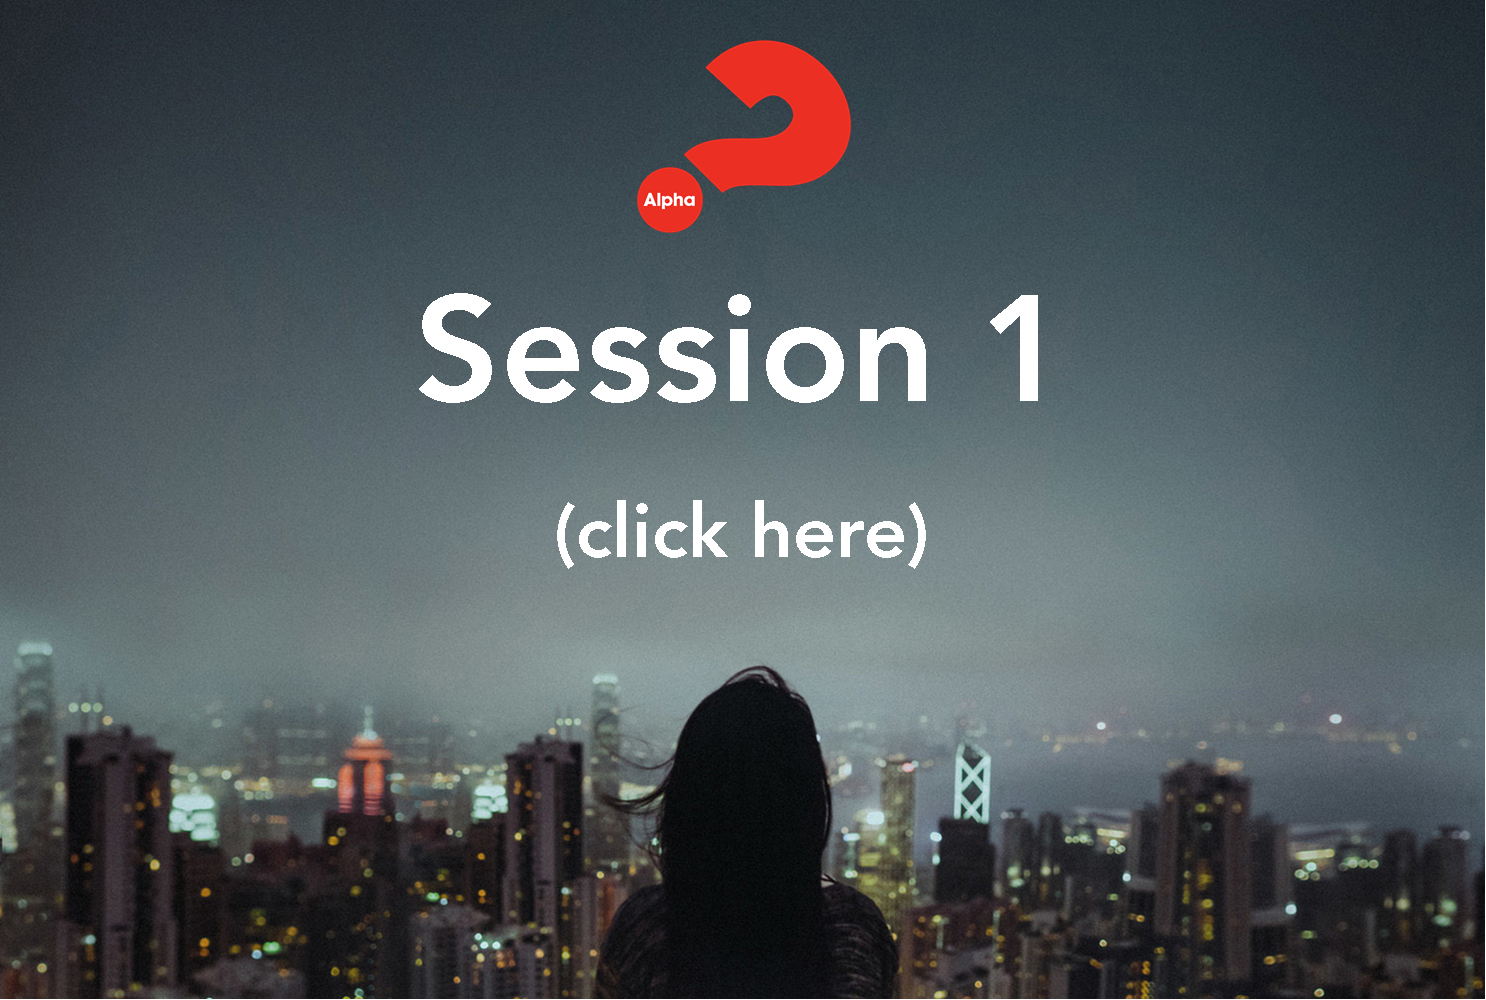 Session 1 WB.png